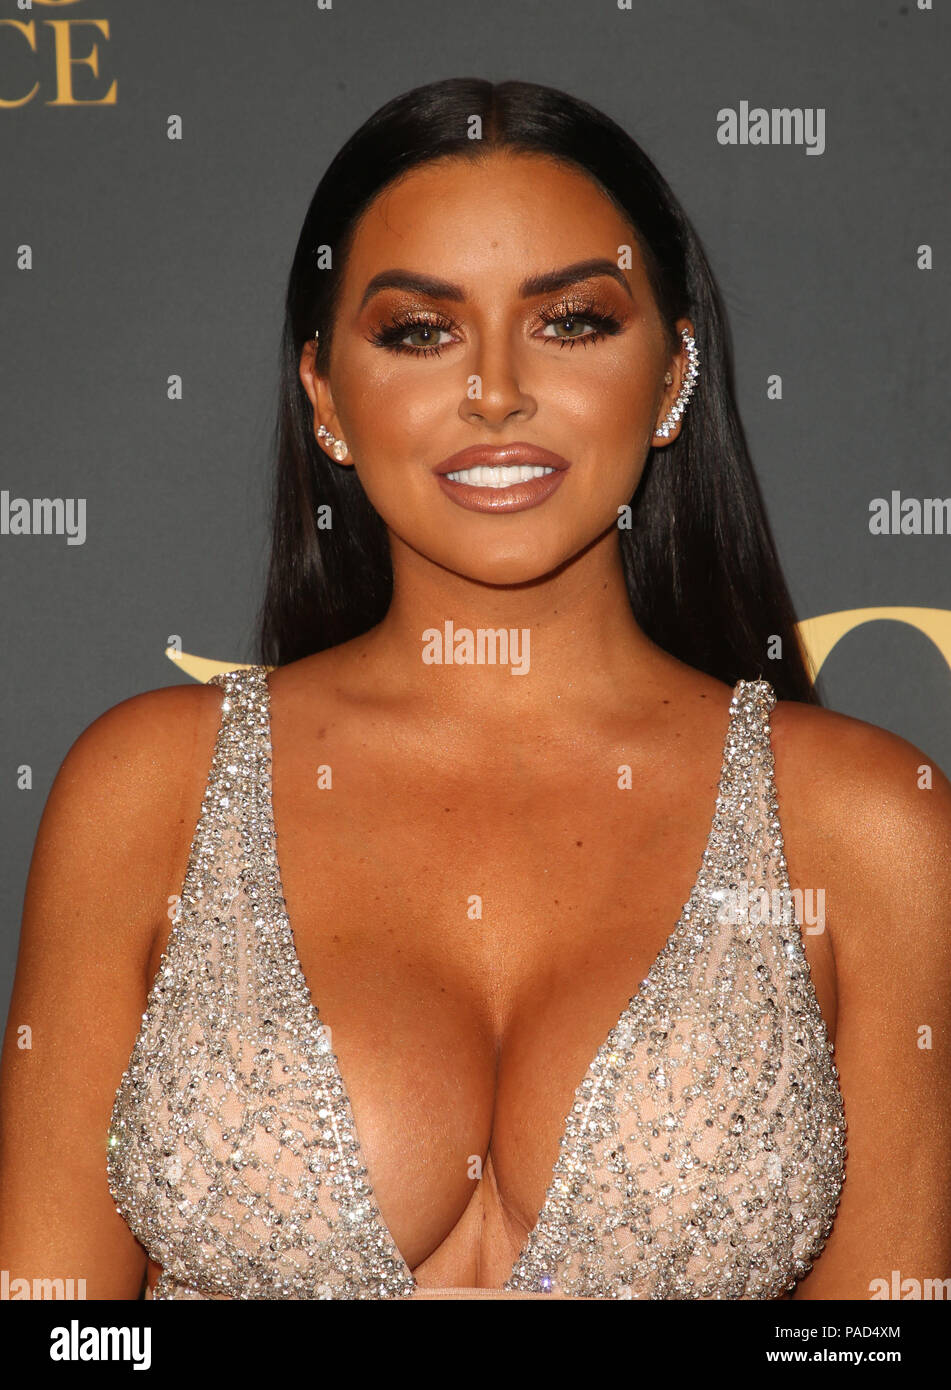 Hot Abigail Ratchford nudes (52 foto and video), Tits, Sideboobs, Selfie, braless 2006